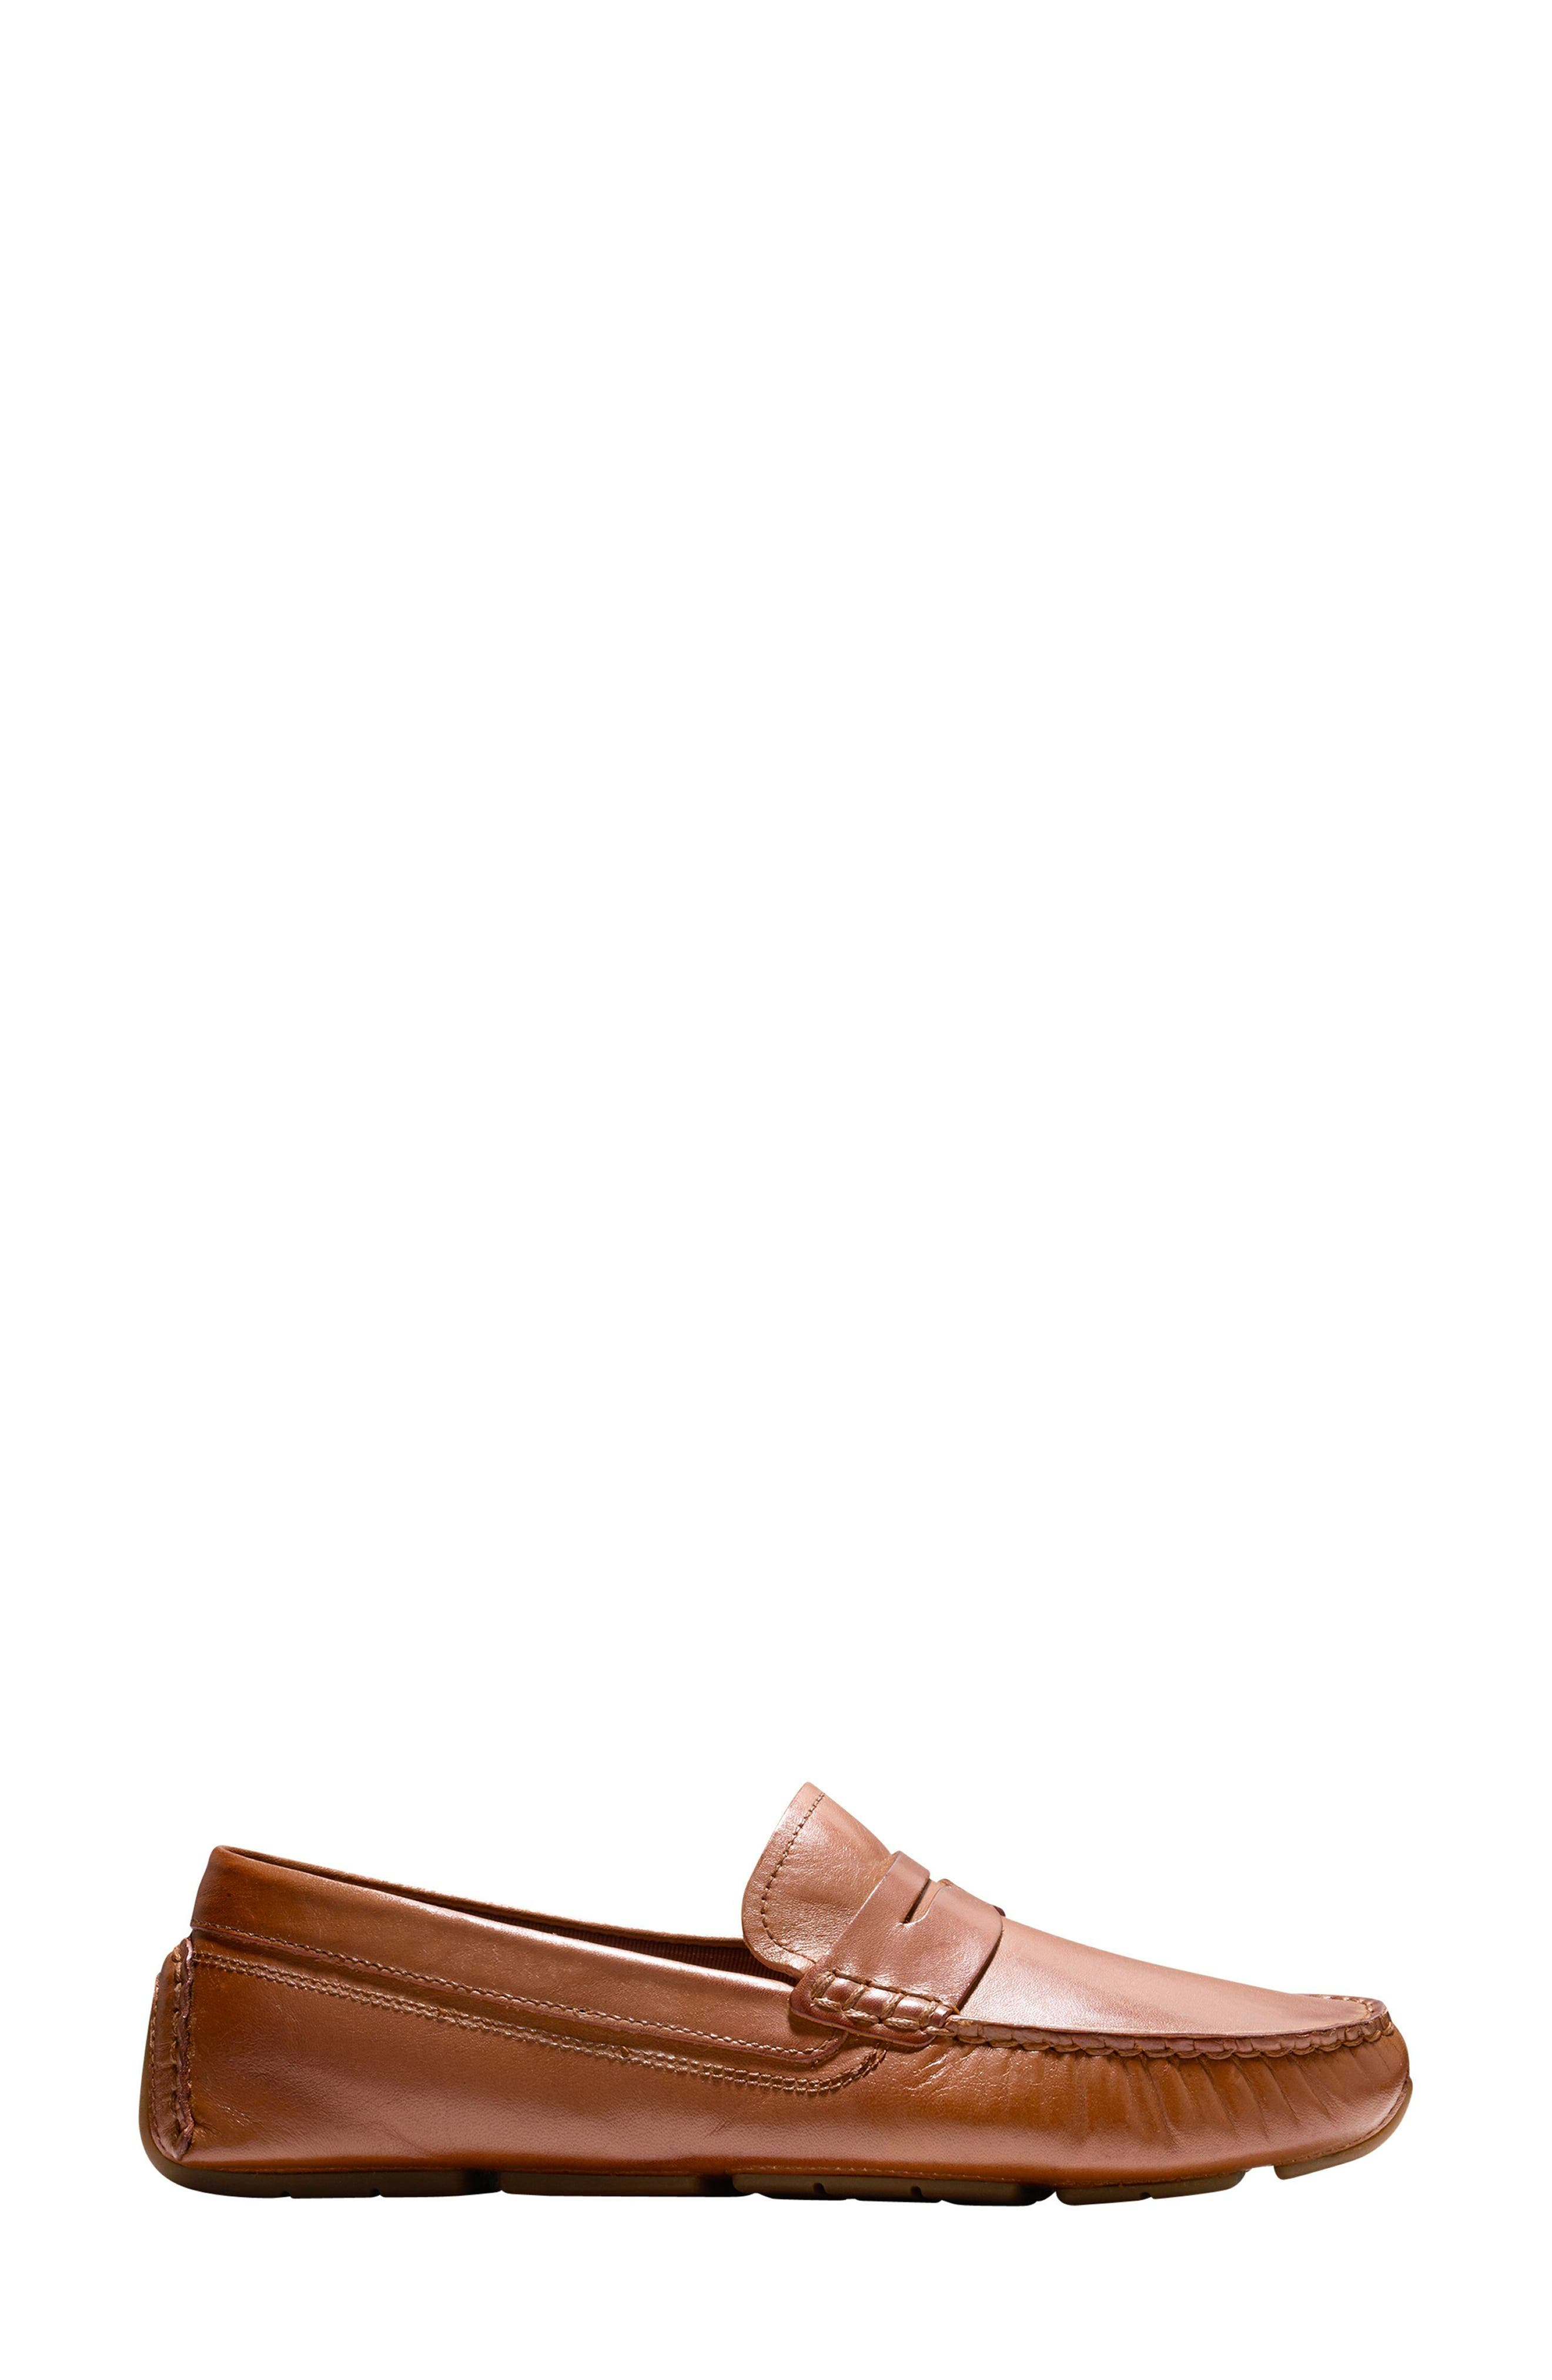 Rodeo Penny Driving Loafer,                             Alternate thumbnail 3, color,                             200